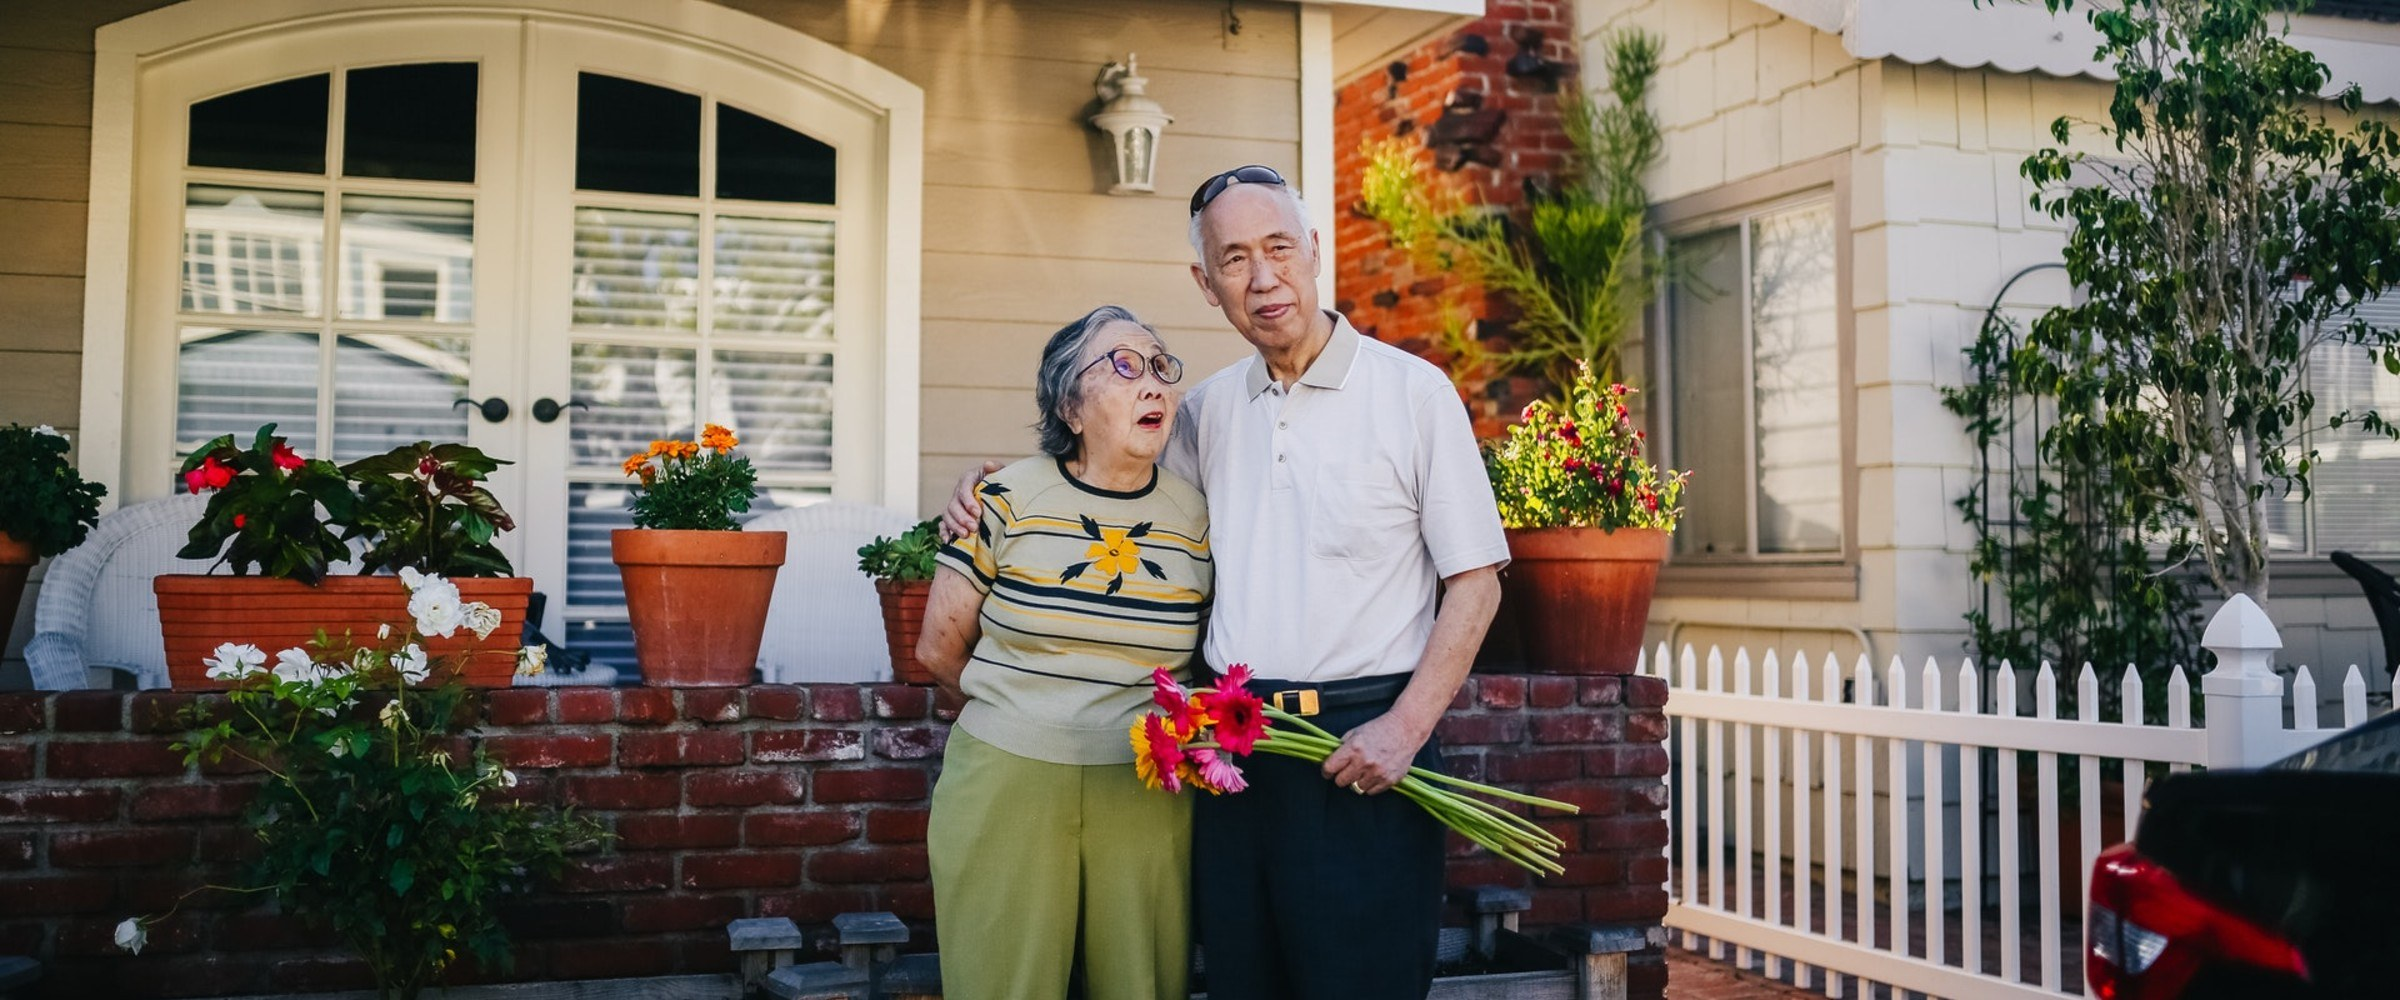 elderly aging in place in their homes